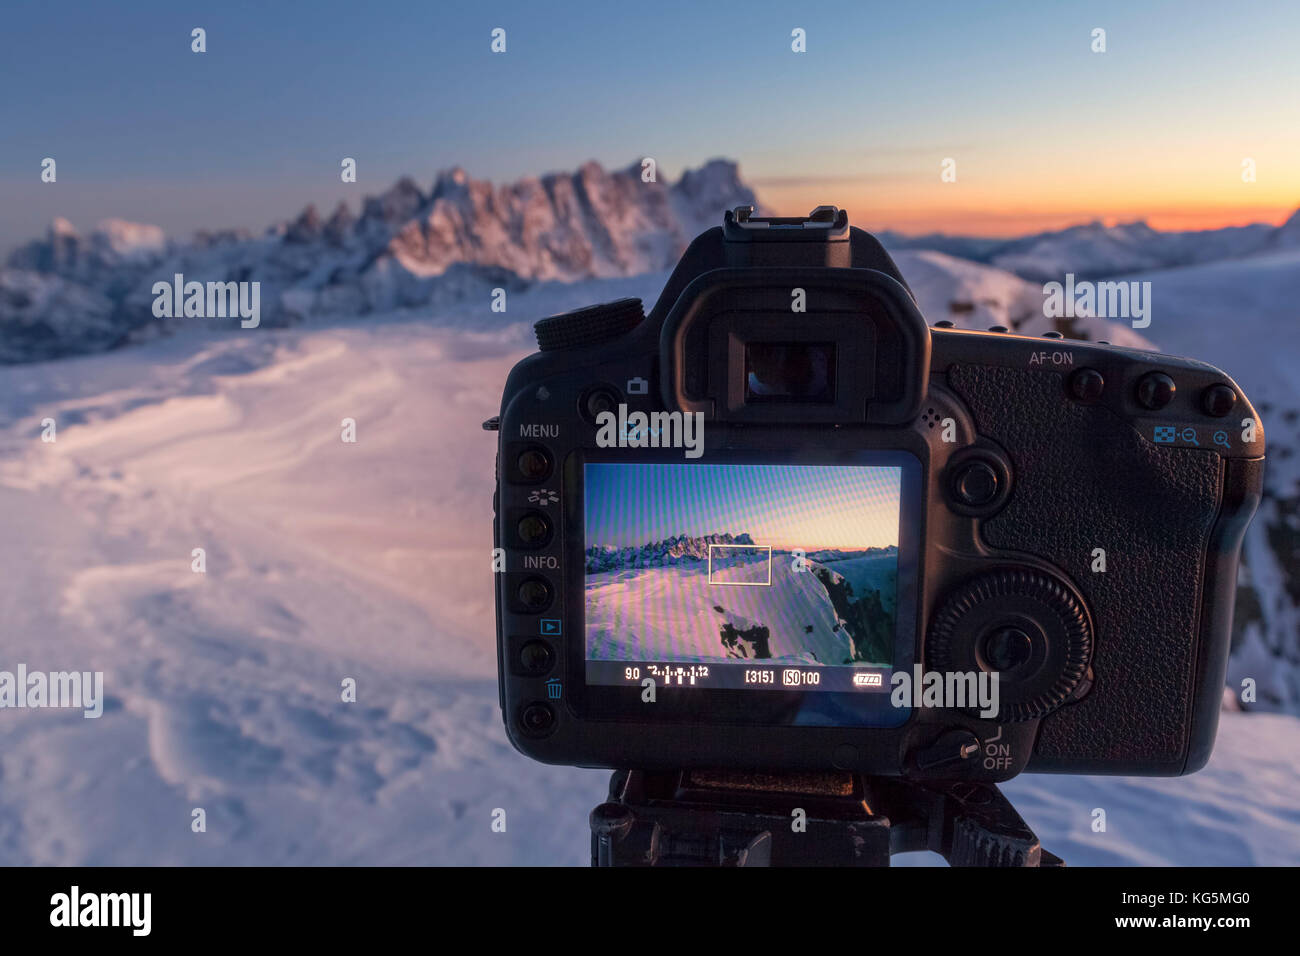 Europe, Italy, Veneto, Belluno. A SLR camera in mountain with live view display active frames the mountains in background - Stock Image